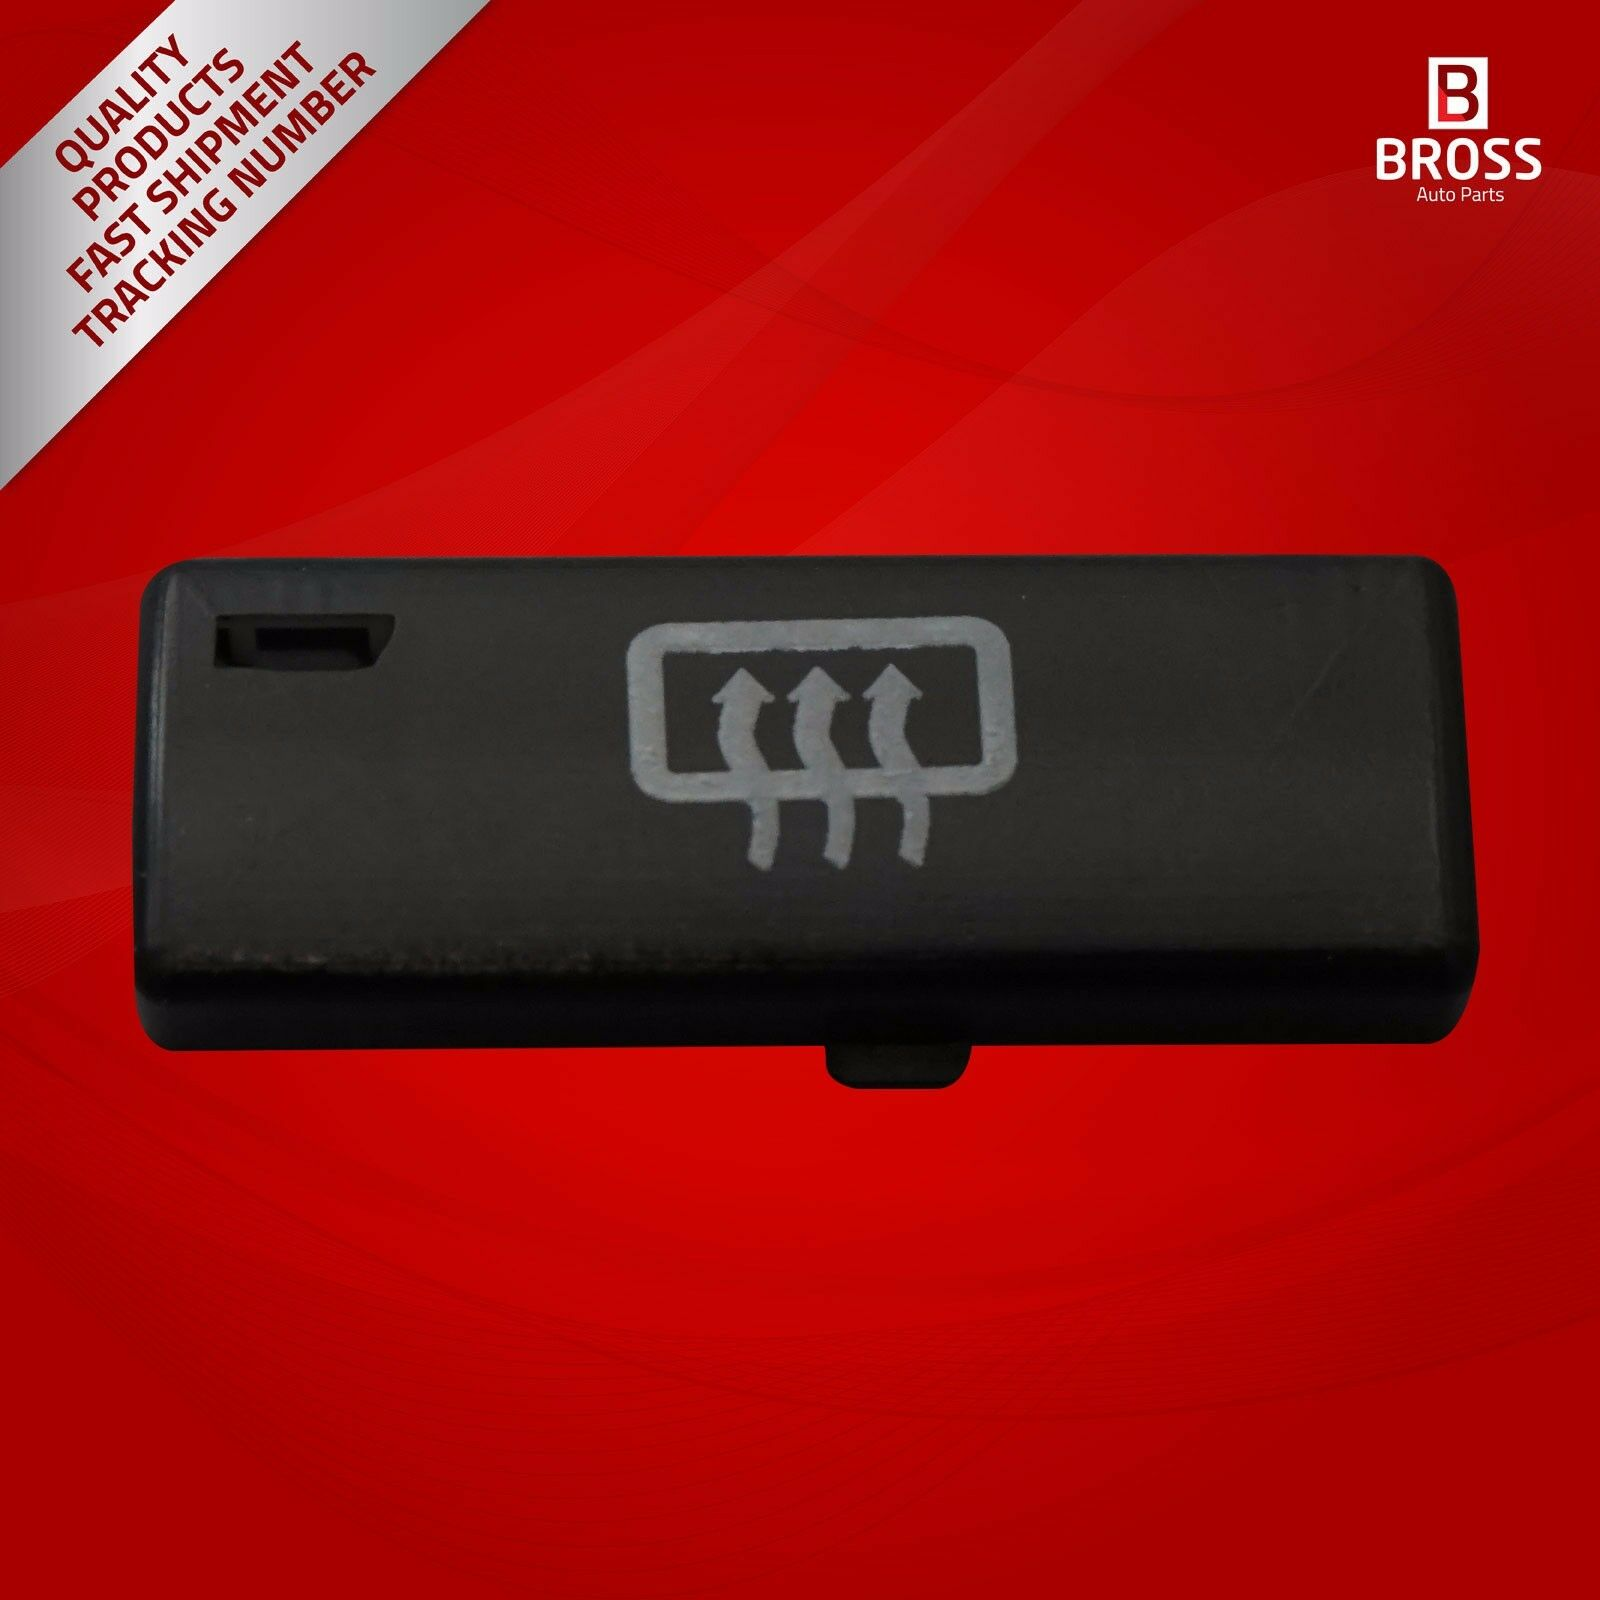 BDP88-10 1 Piece Heater Climate Control Air Conditioning Switch Button Cover #10 For 5 Series X5 E53 2000- 2007 E39 1995-2003